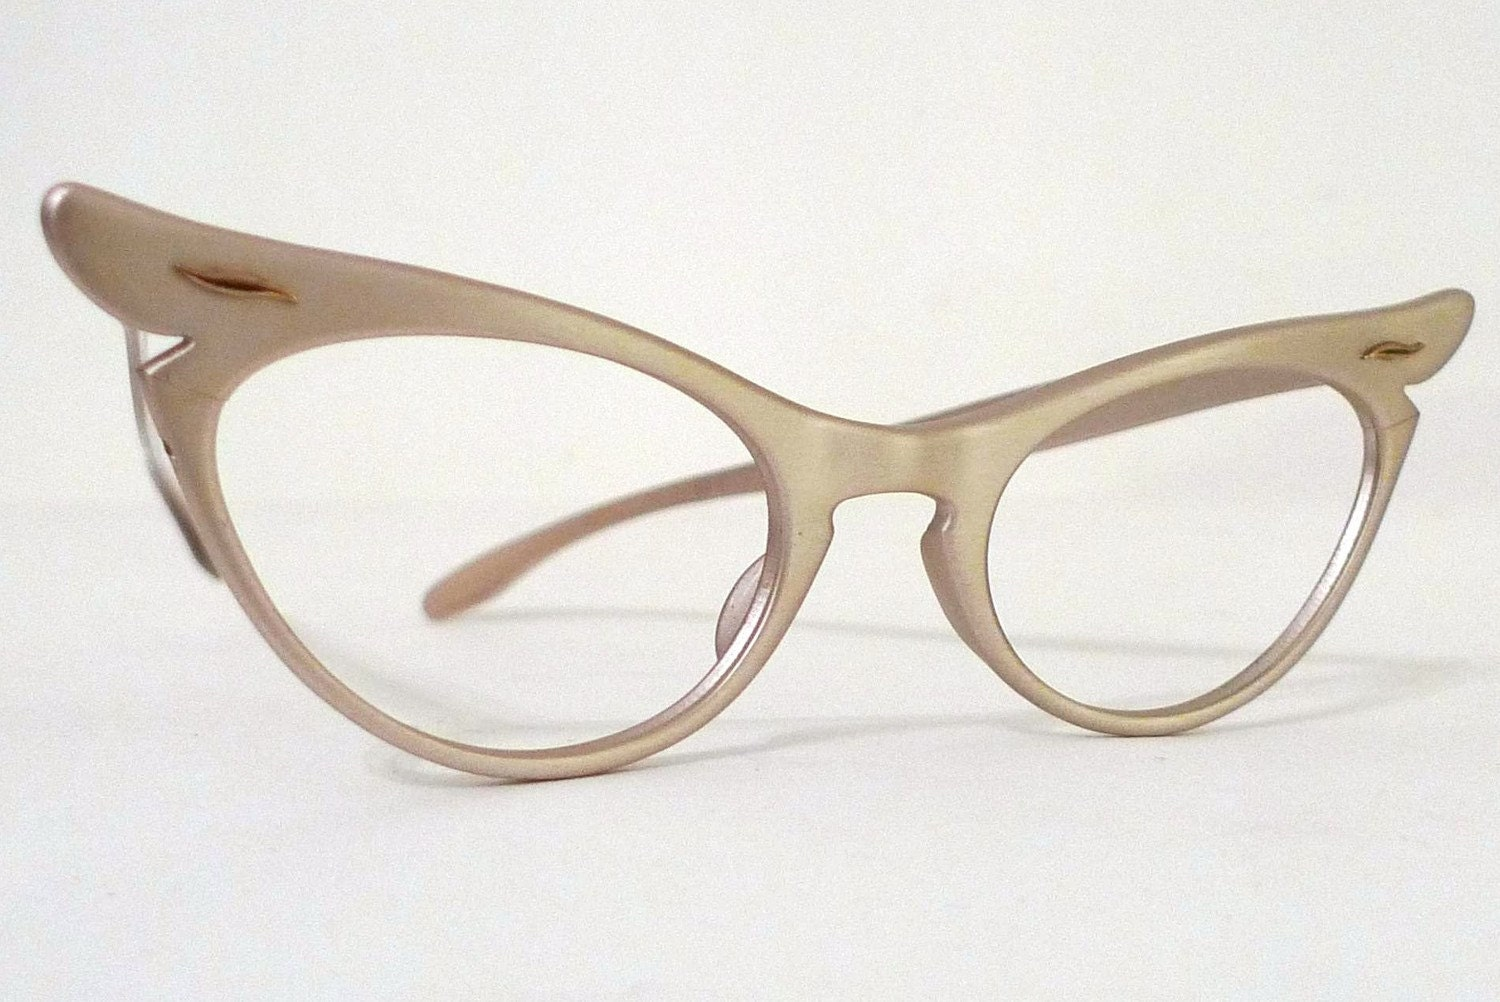 Cat Eye Glasses Small Small Cateye Eye Glasses or